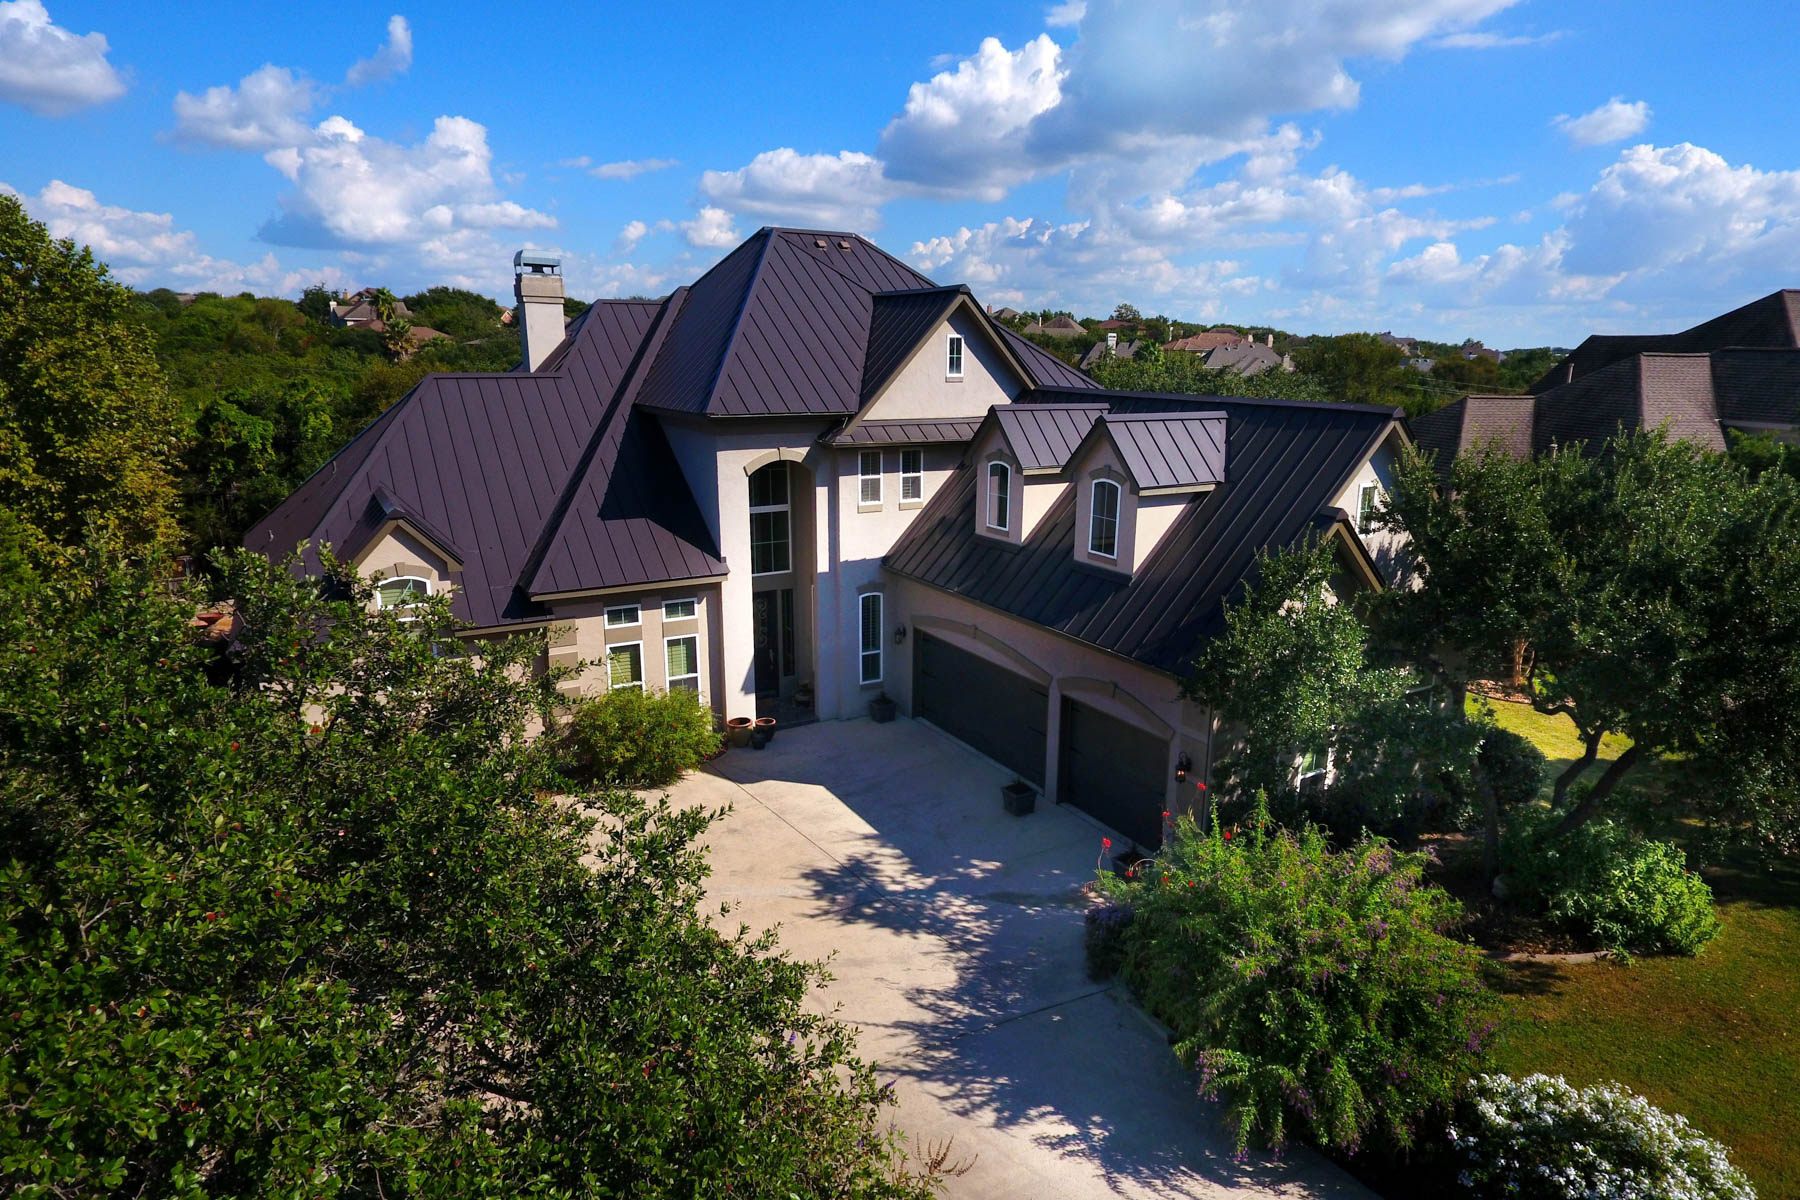 Single Family Home for Sale at Beautiful Former Parade Home in Rogers Ranch 2902 Ivory Crk Rogers Ranch, San Antonio, Texas, 78258 United States